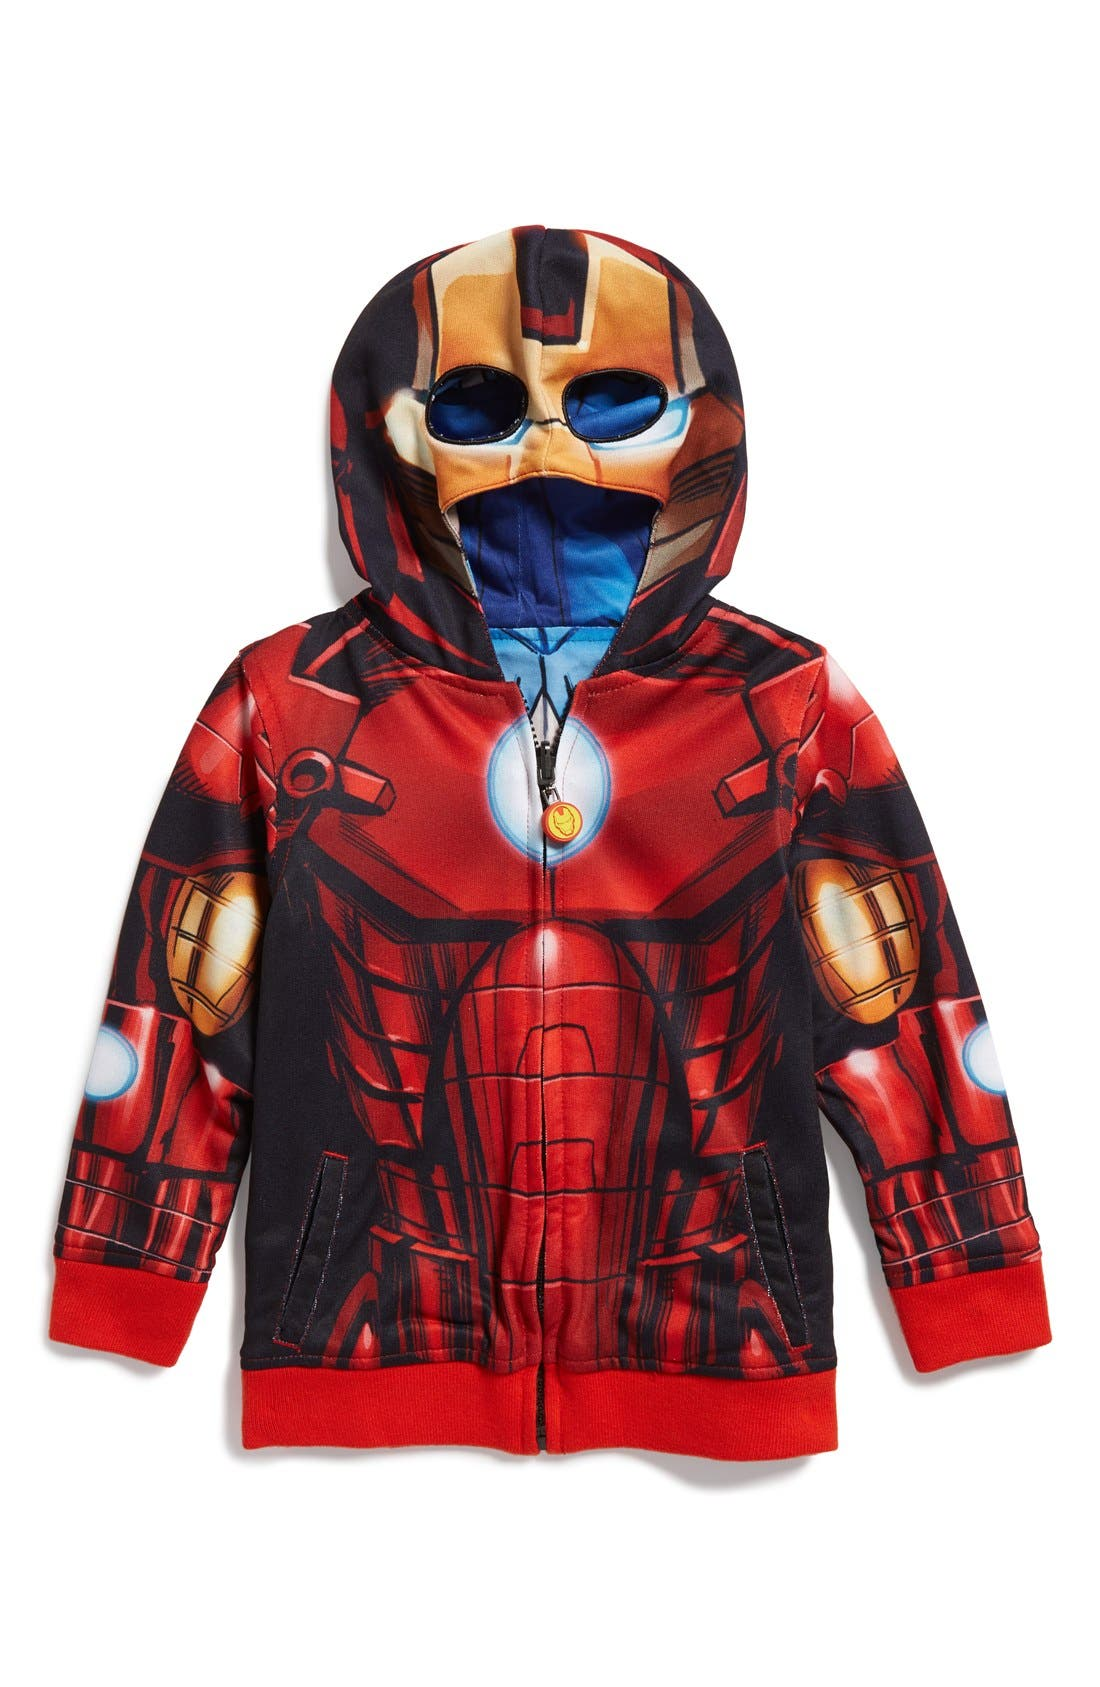 'Marvel Avengers - Iron Man/Captain America' Reversible Hoodie,                             Main thumbnail 1, color,                             615